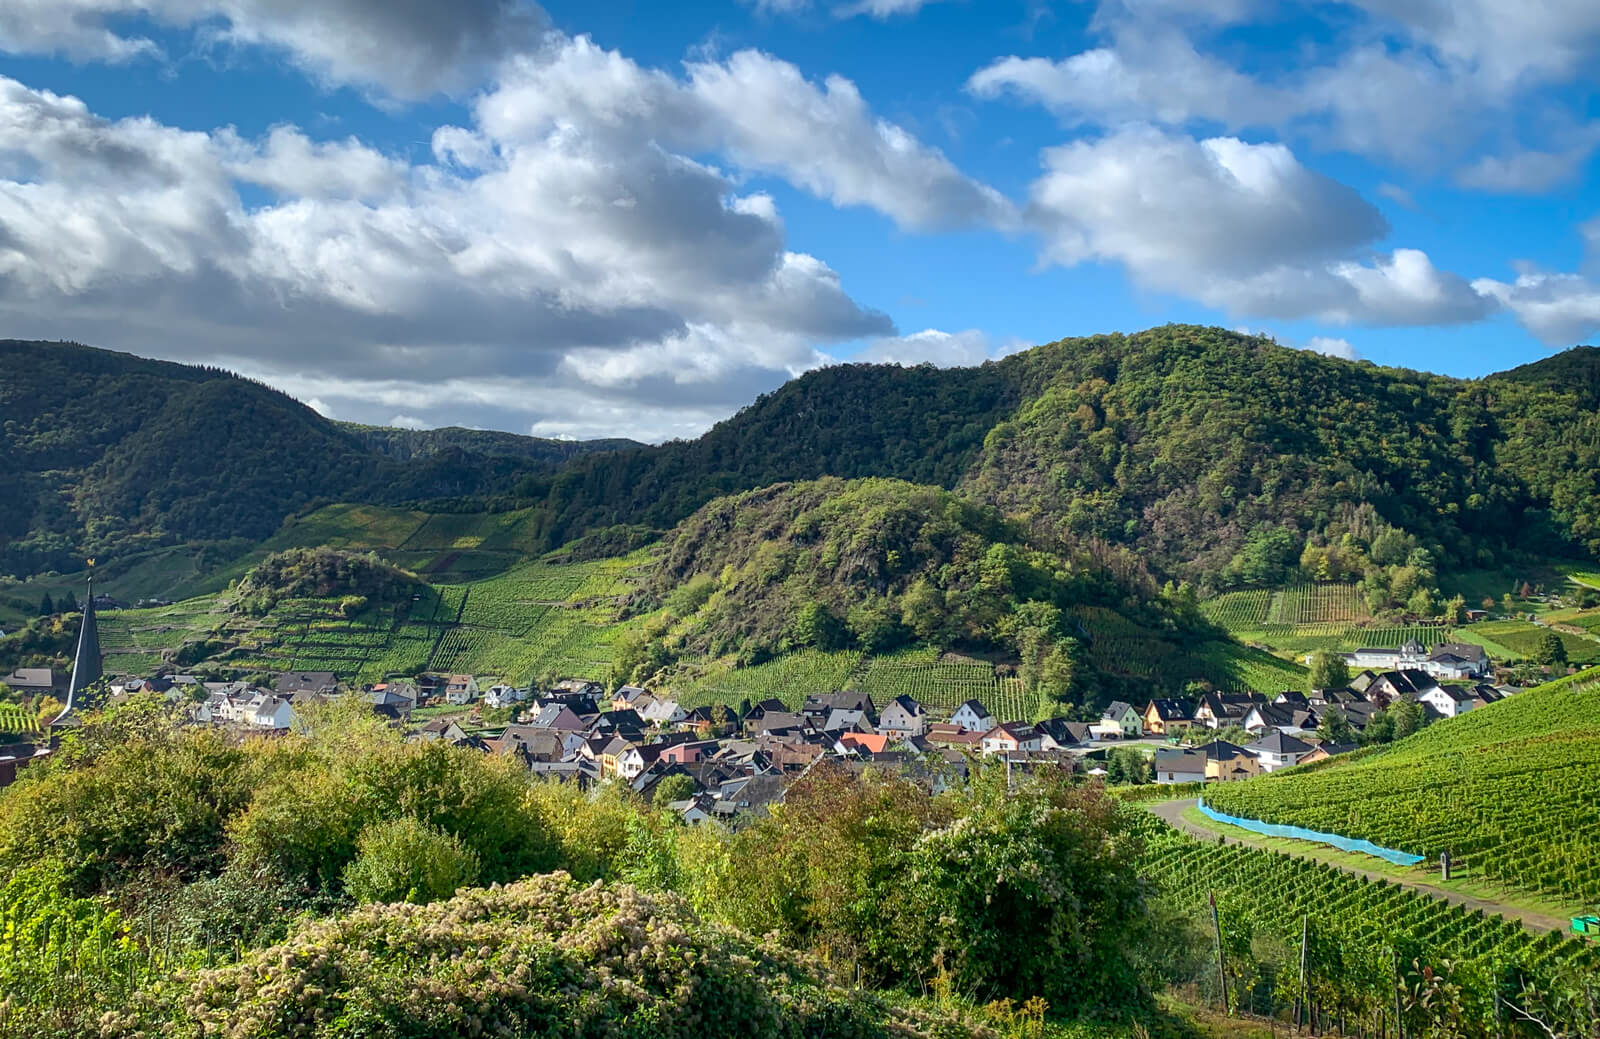 Looking over the village of Mayschoß (Mayschoss) in Western Ahr.